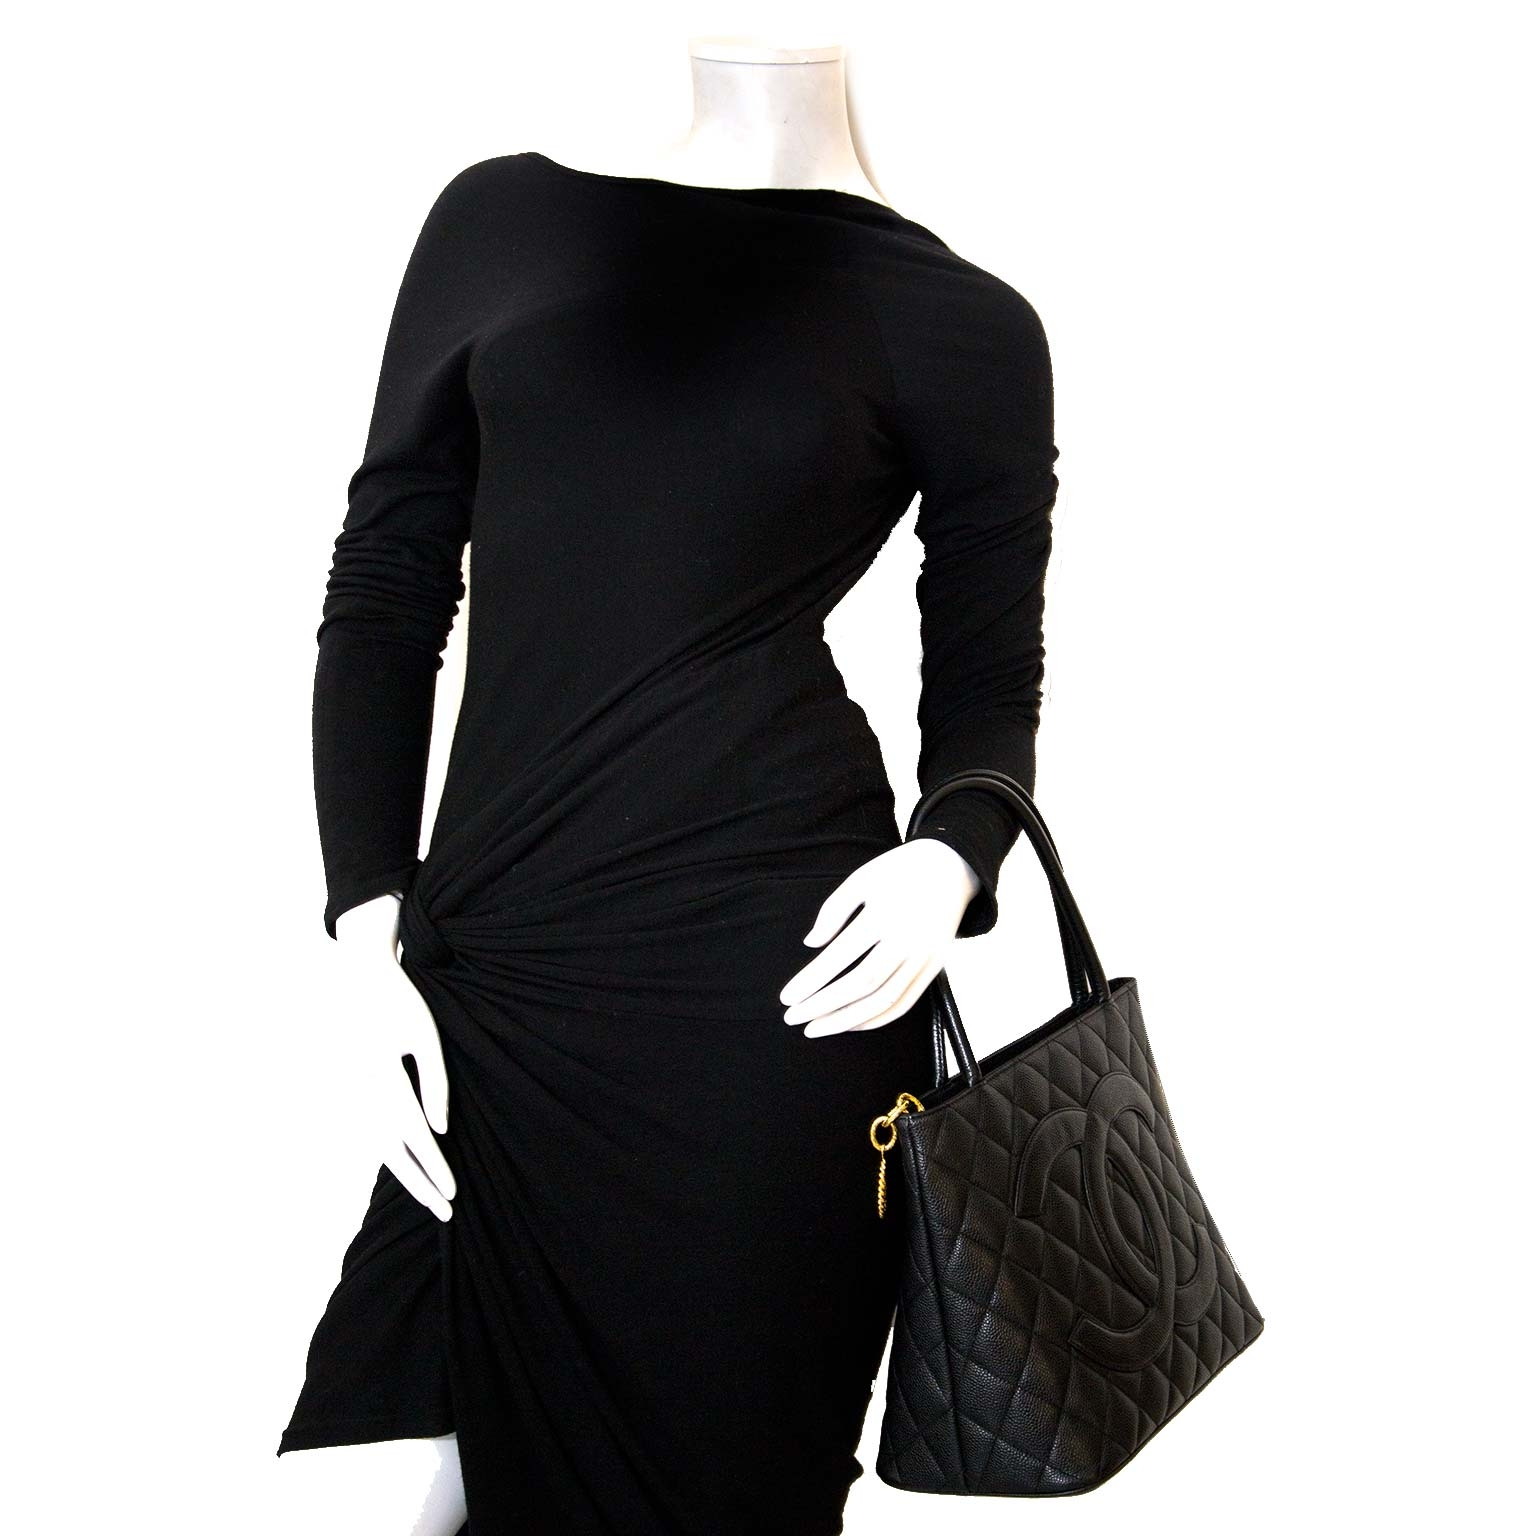 Chanel grand cc classic black shopper now for sale at labellov vintage fashion webshop belgium